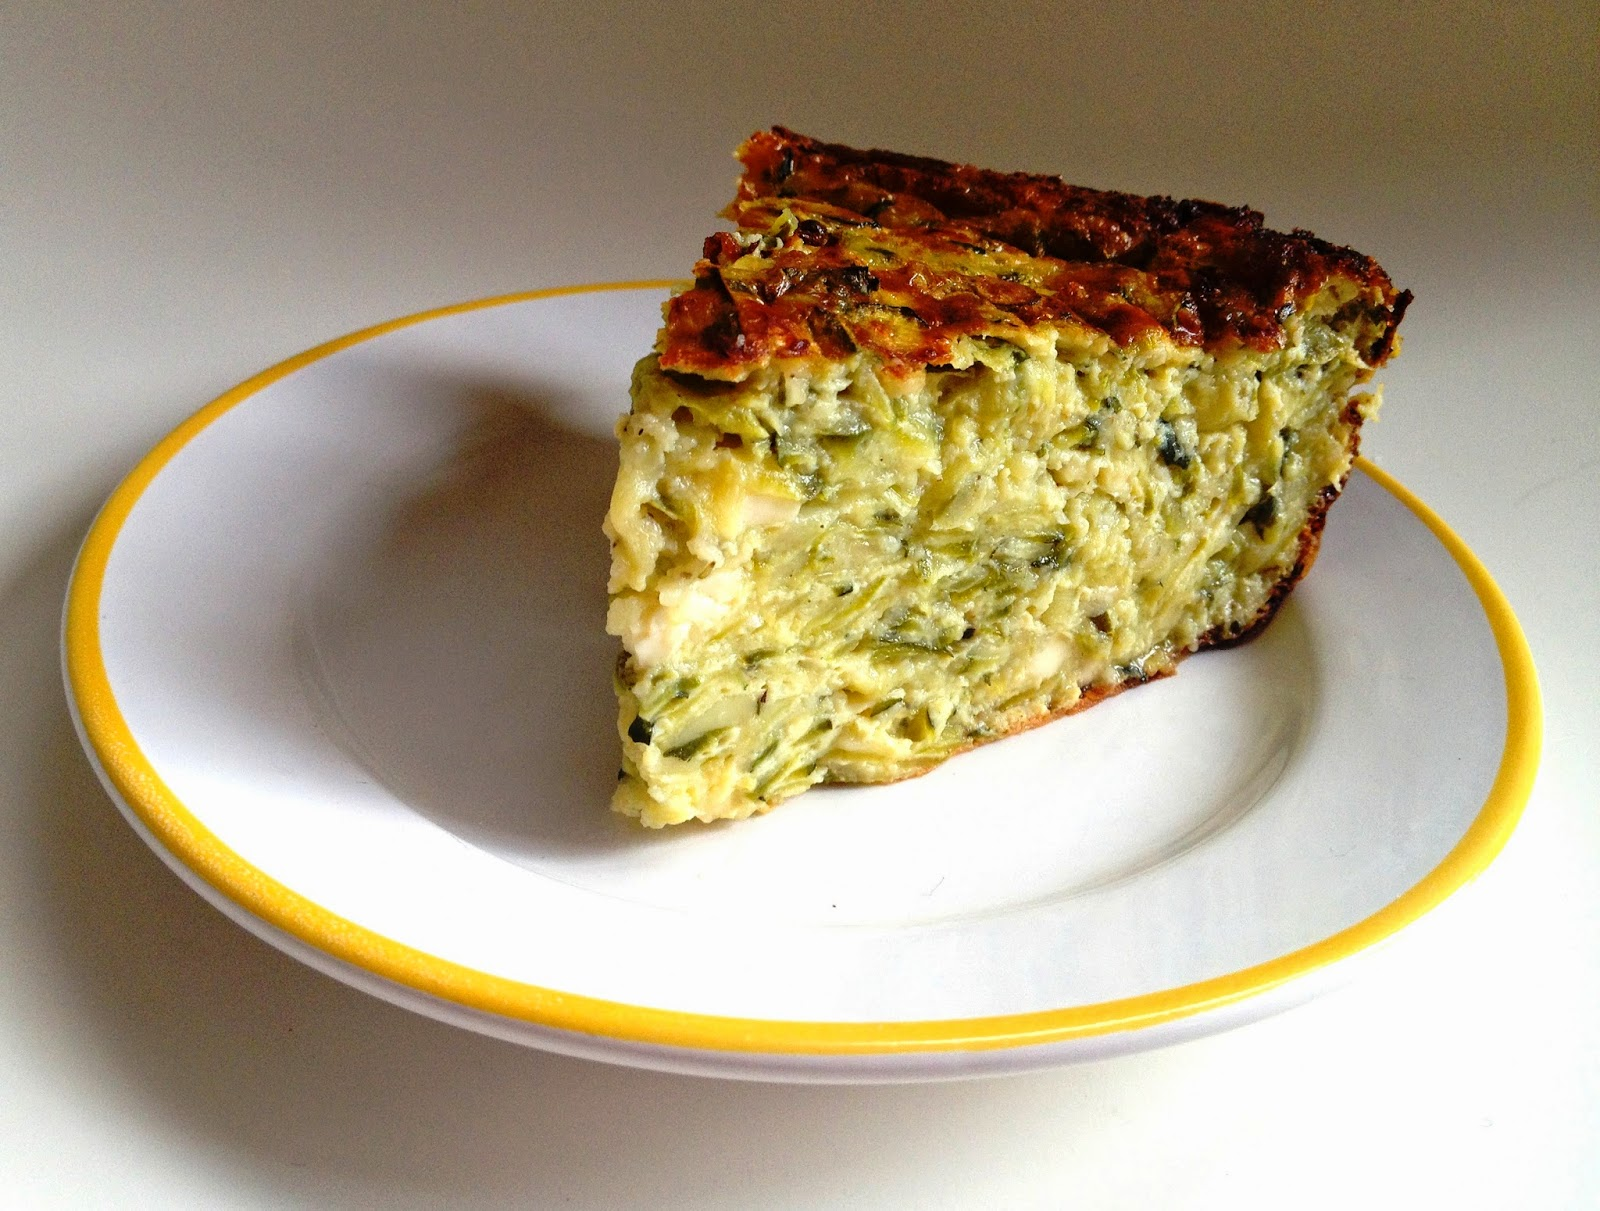 Souffle of zucchini. Cooking recipes 2